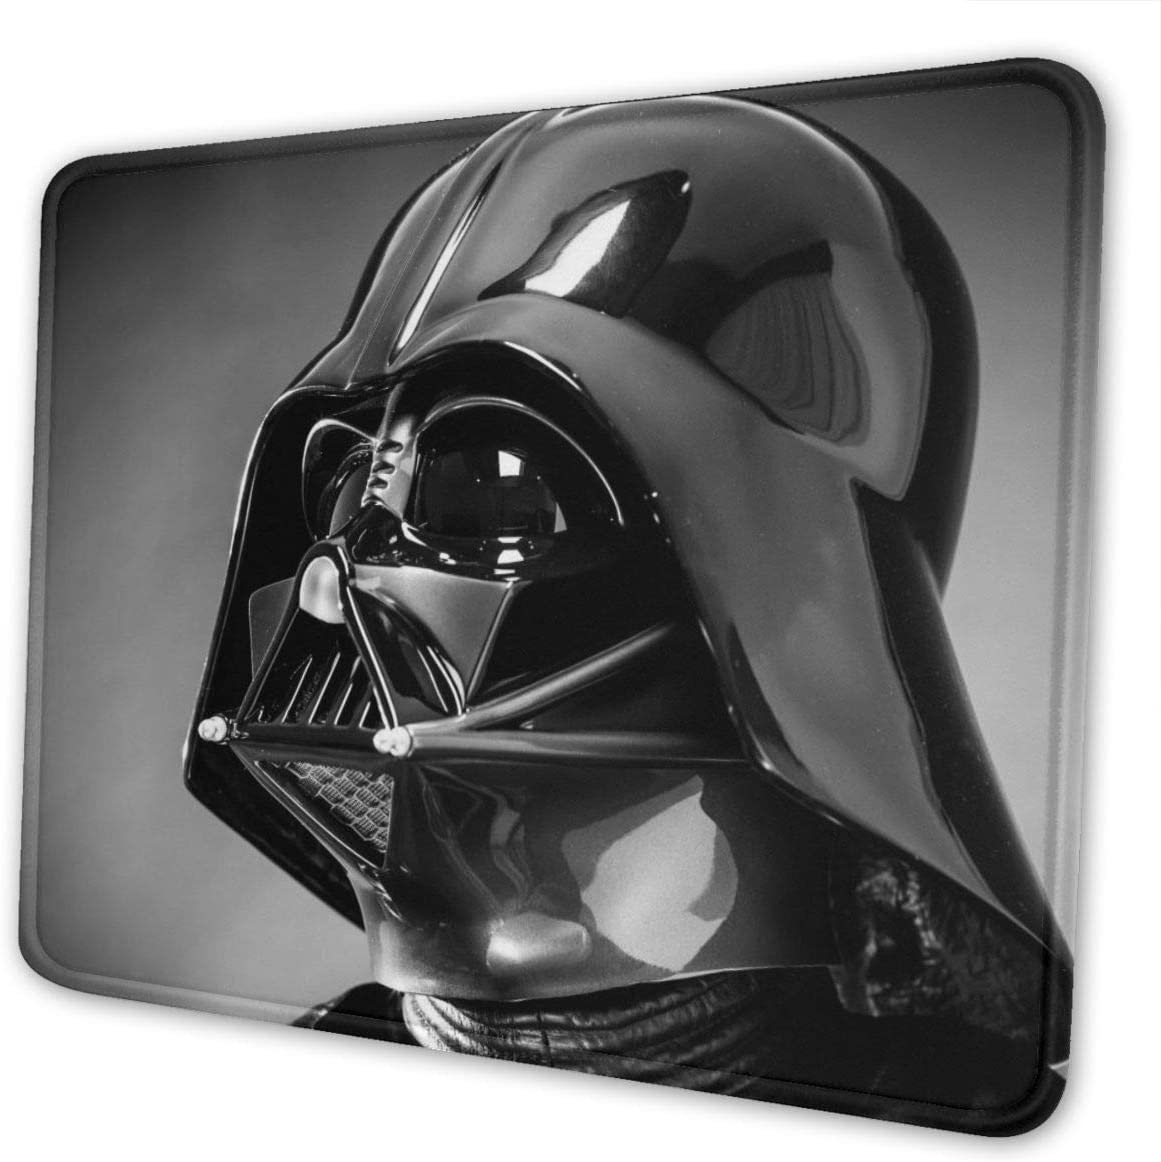 Star Wars Darth Vader Mouse Pad with Stitched Edge Premium-Textured Mouse Mat Non-Slip Rubber Base Mousepad for Laptop Computer /& PC 11.81 X 9.84 X 0.12 inches